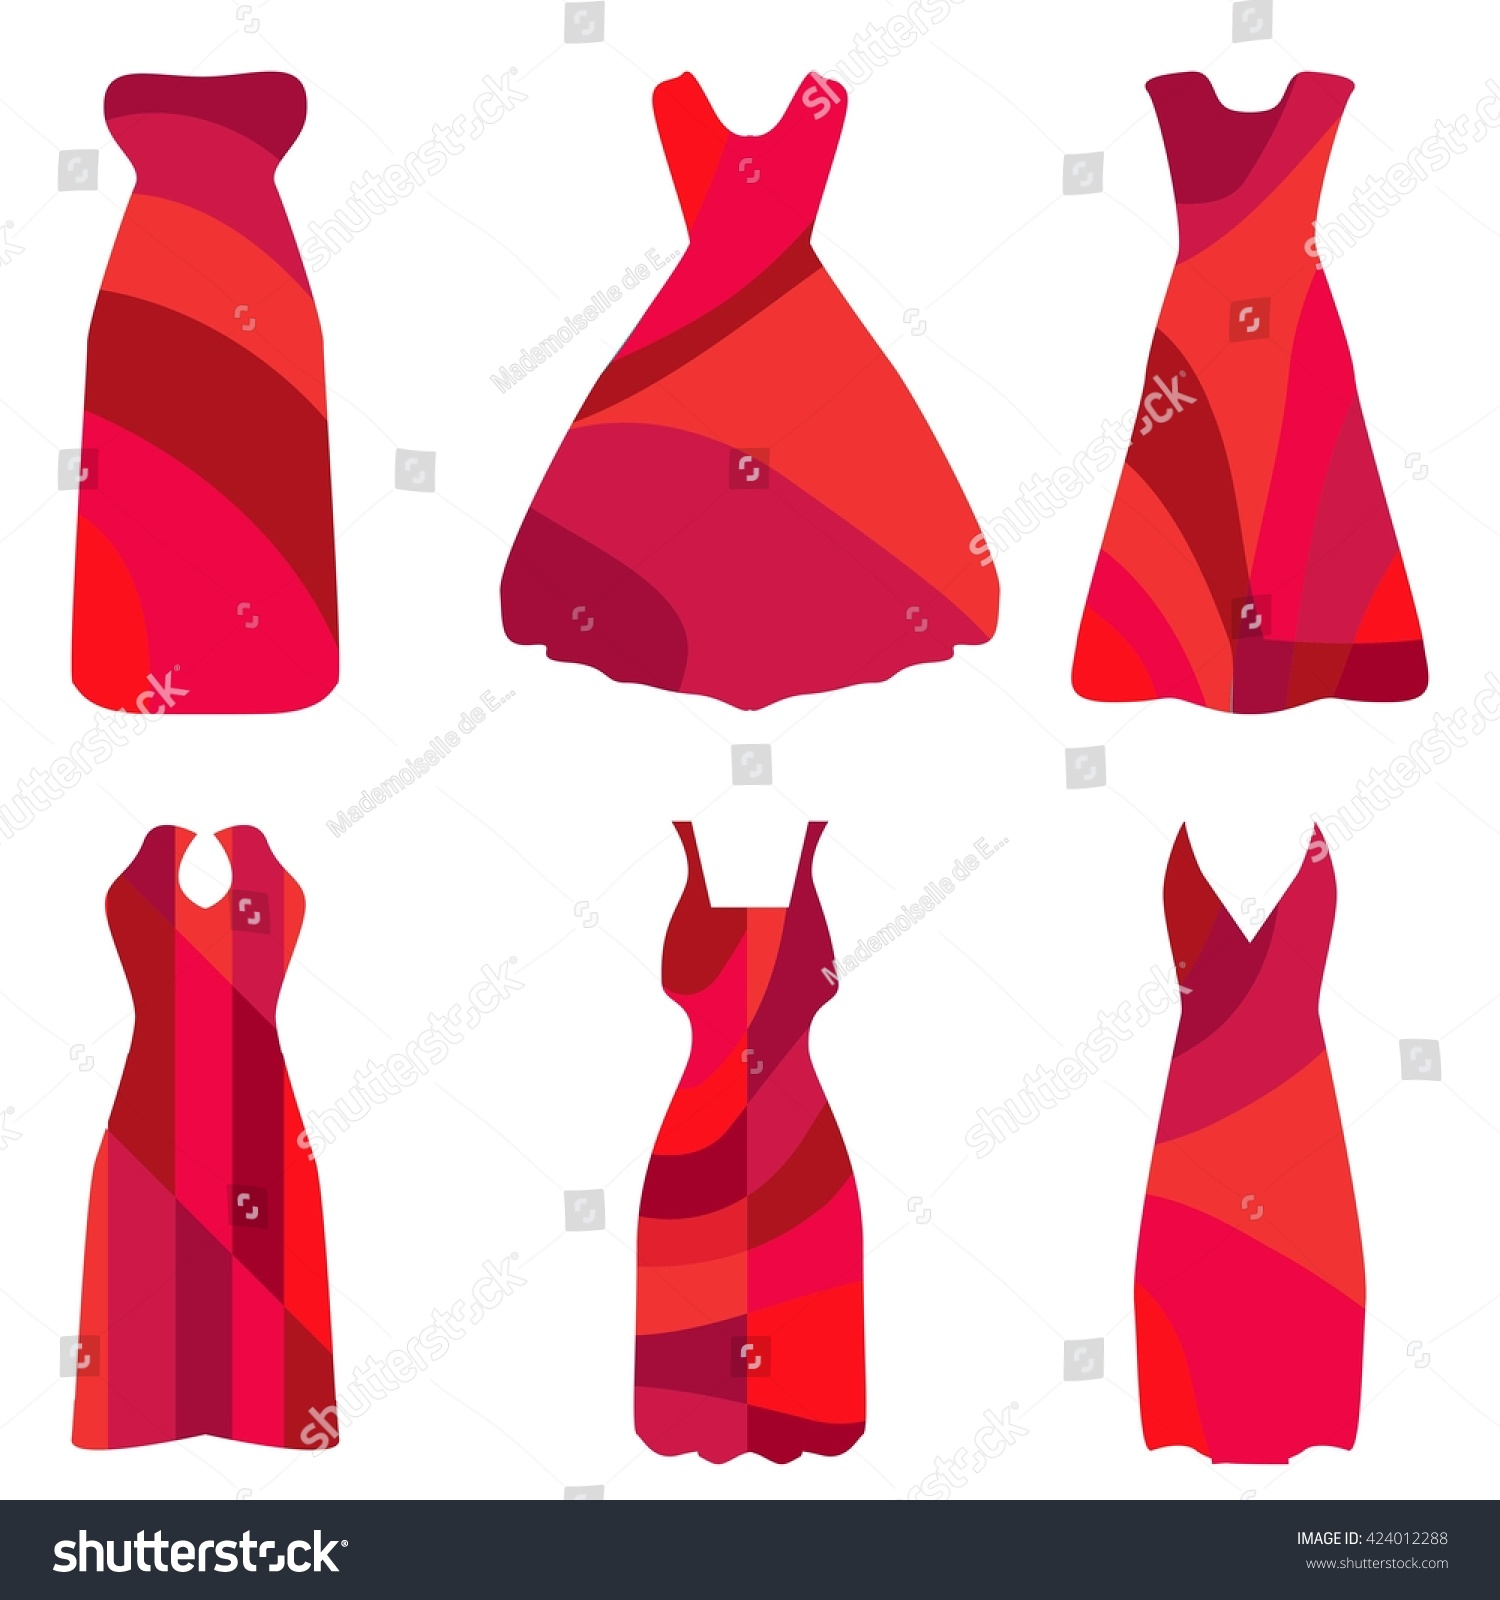 Different Types of Dress Designs